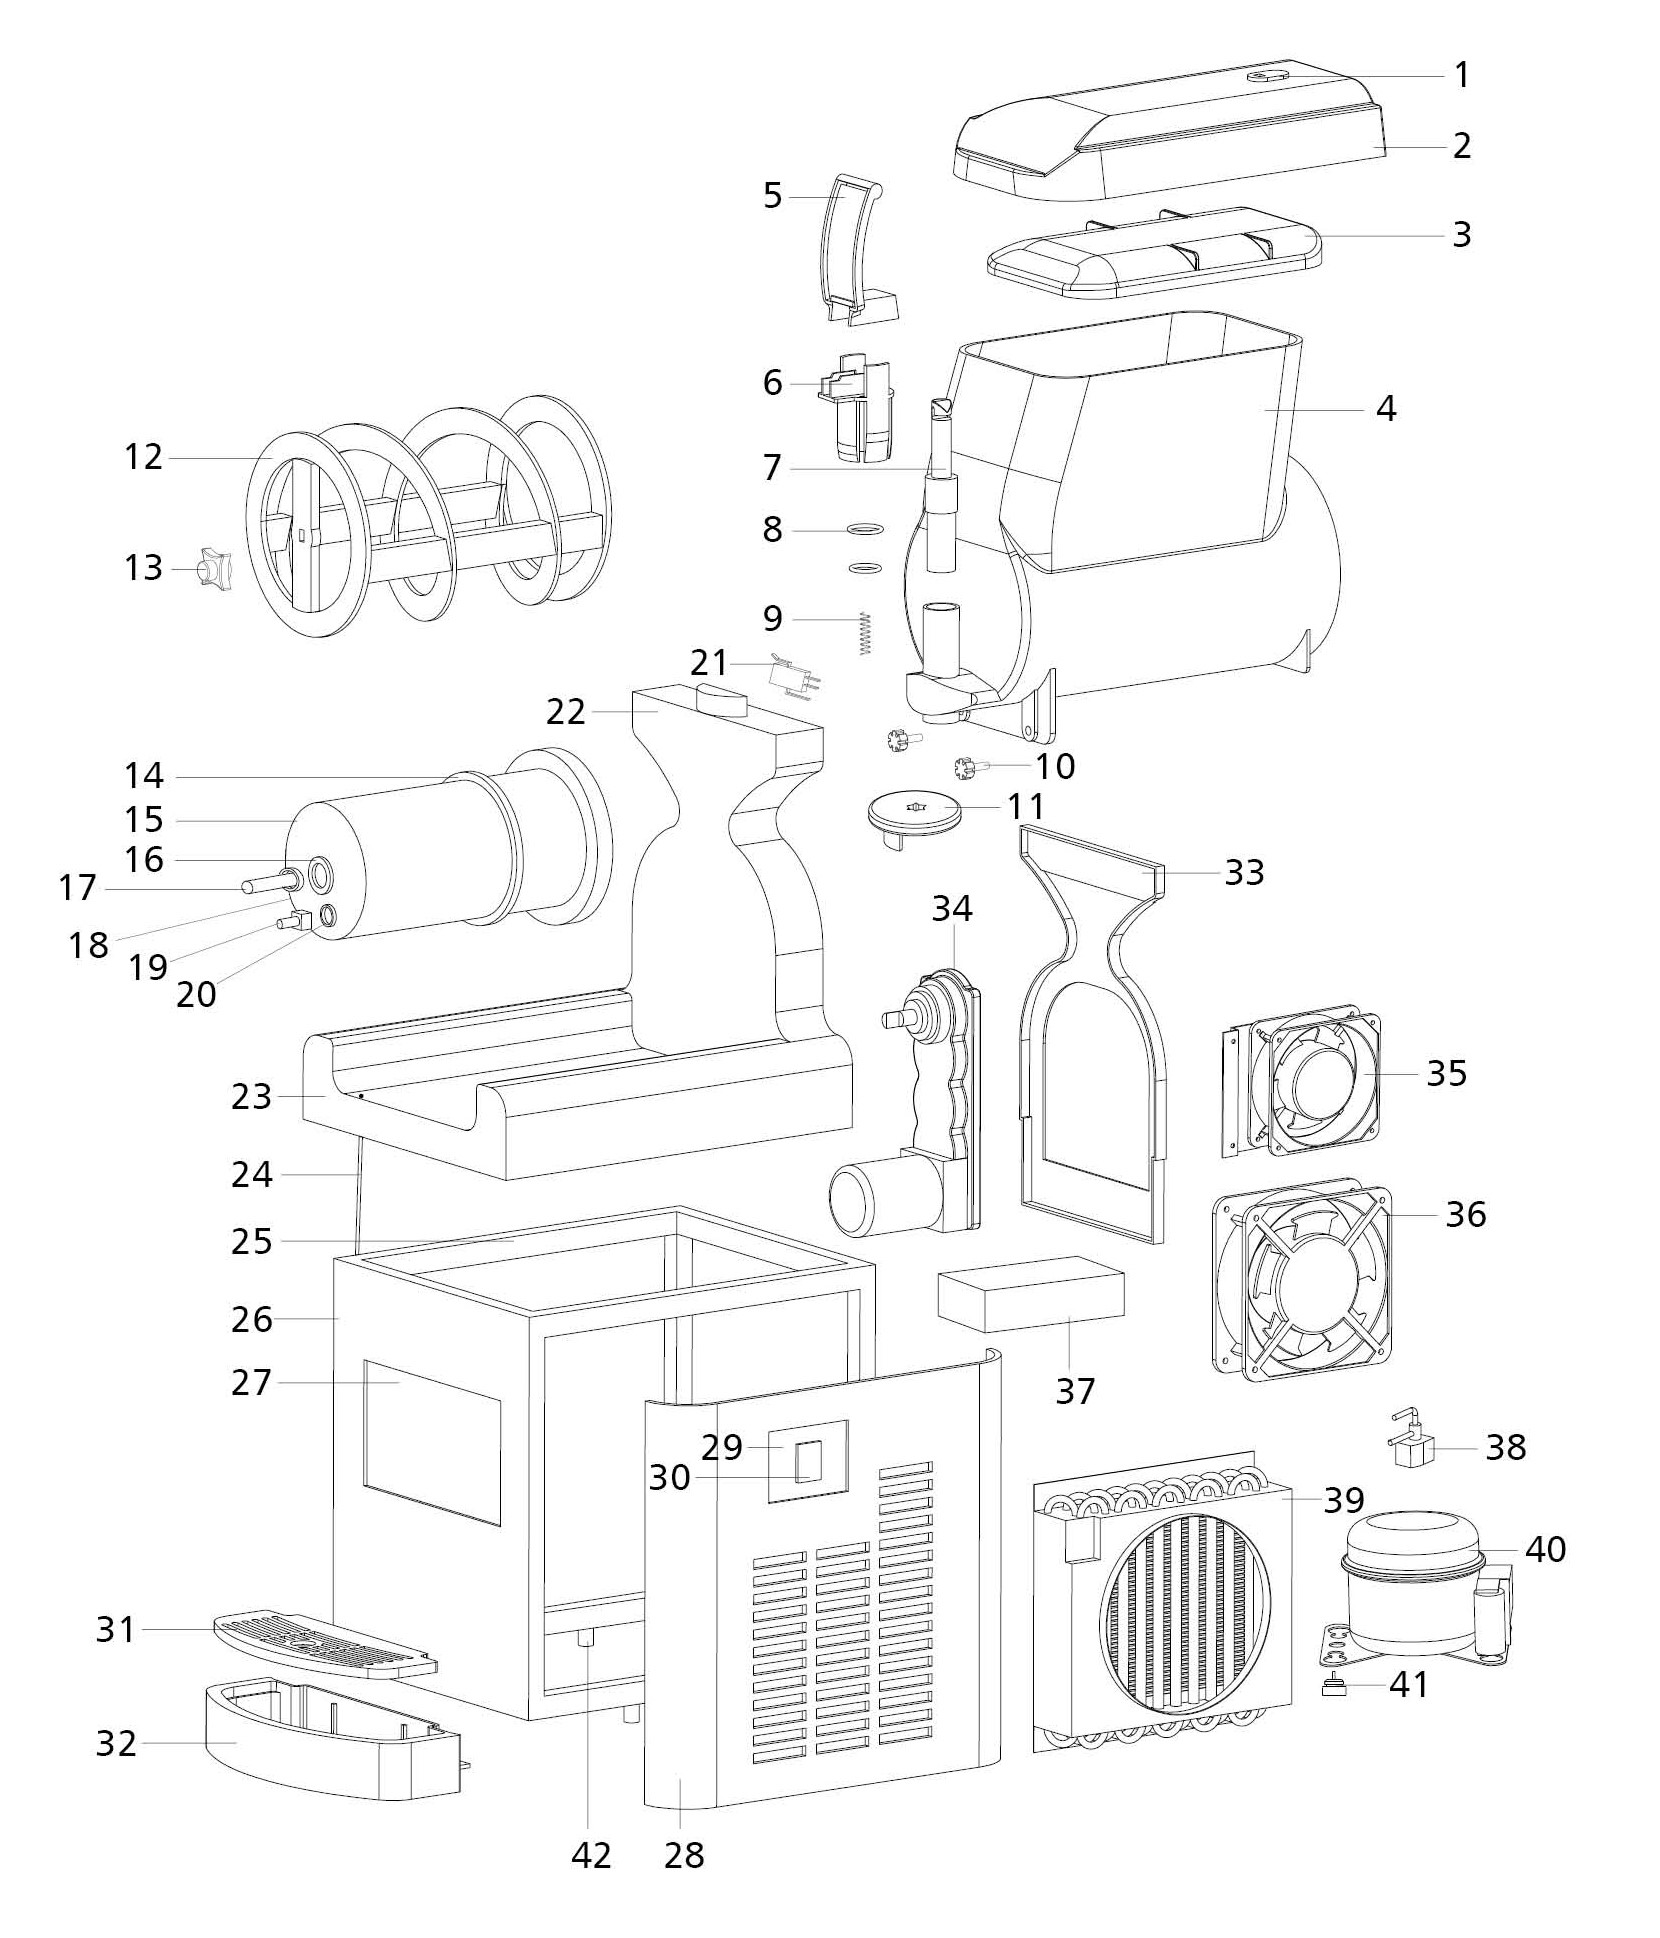 T311 Exploded View Parts Diagram